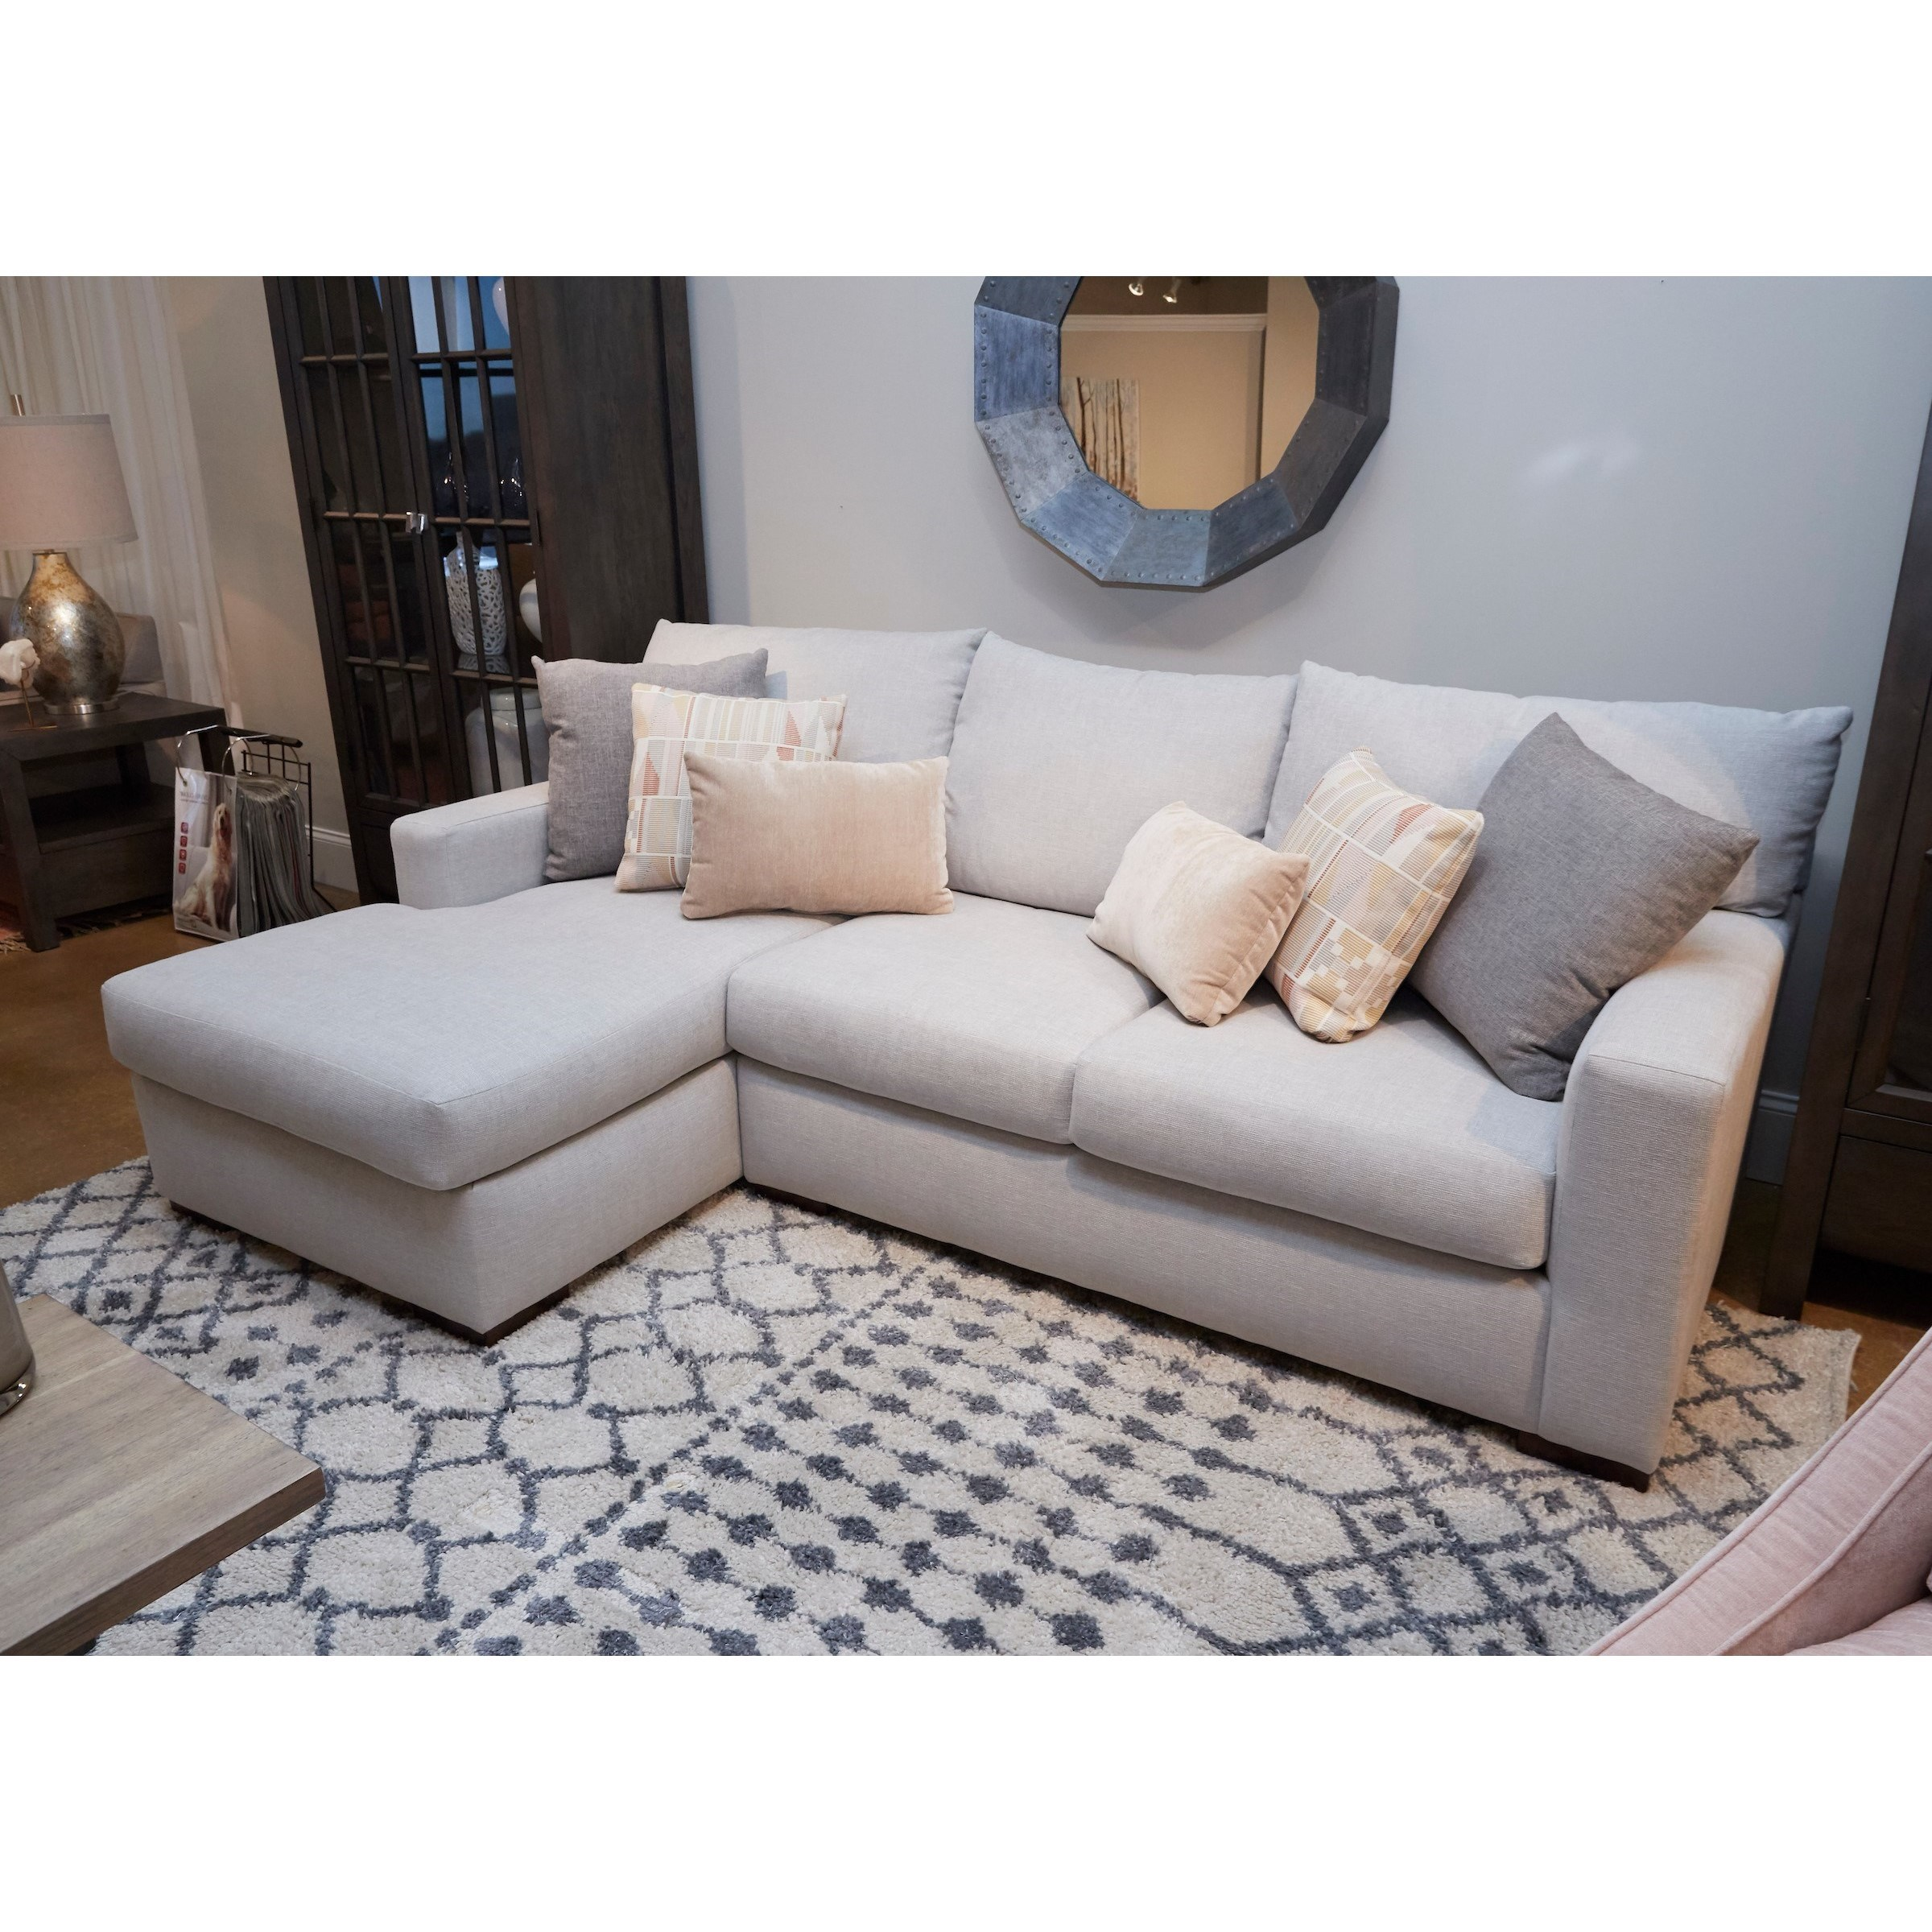 Coley Sectional Sofa with Chaise by Klaussner at Nassau Furniture and Mattress